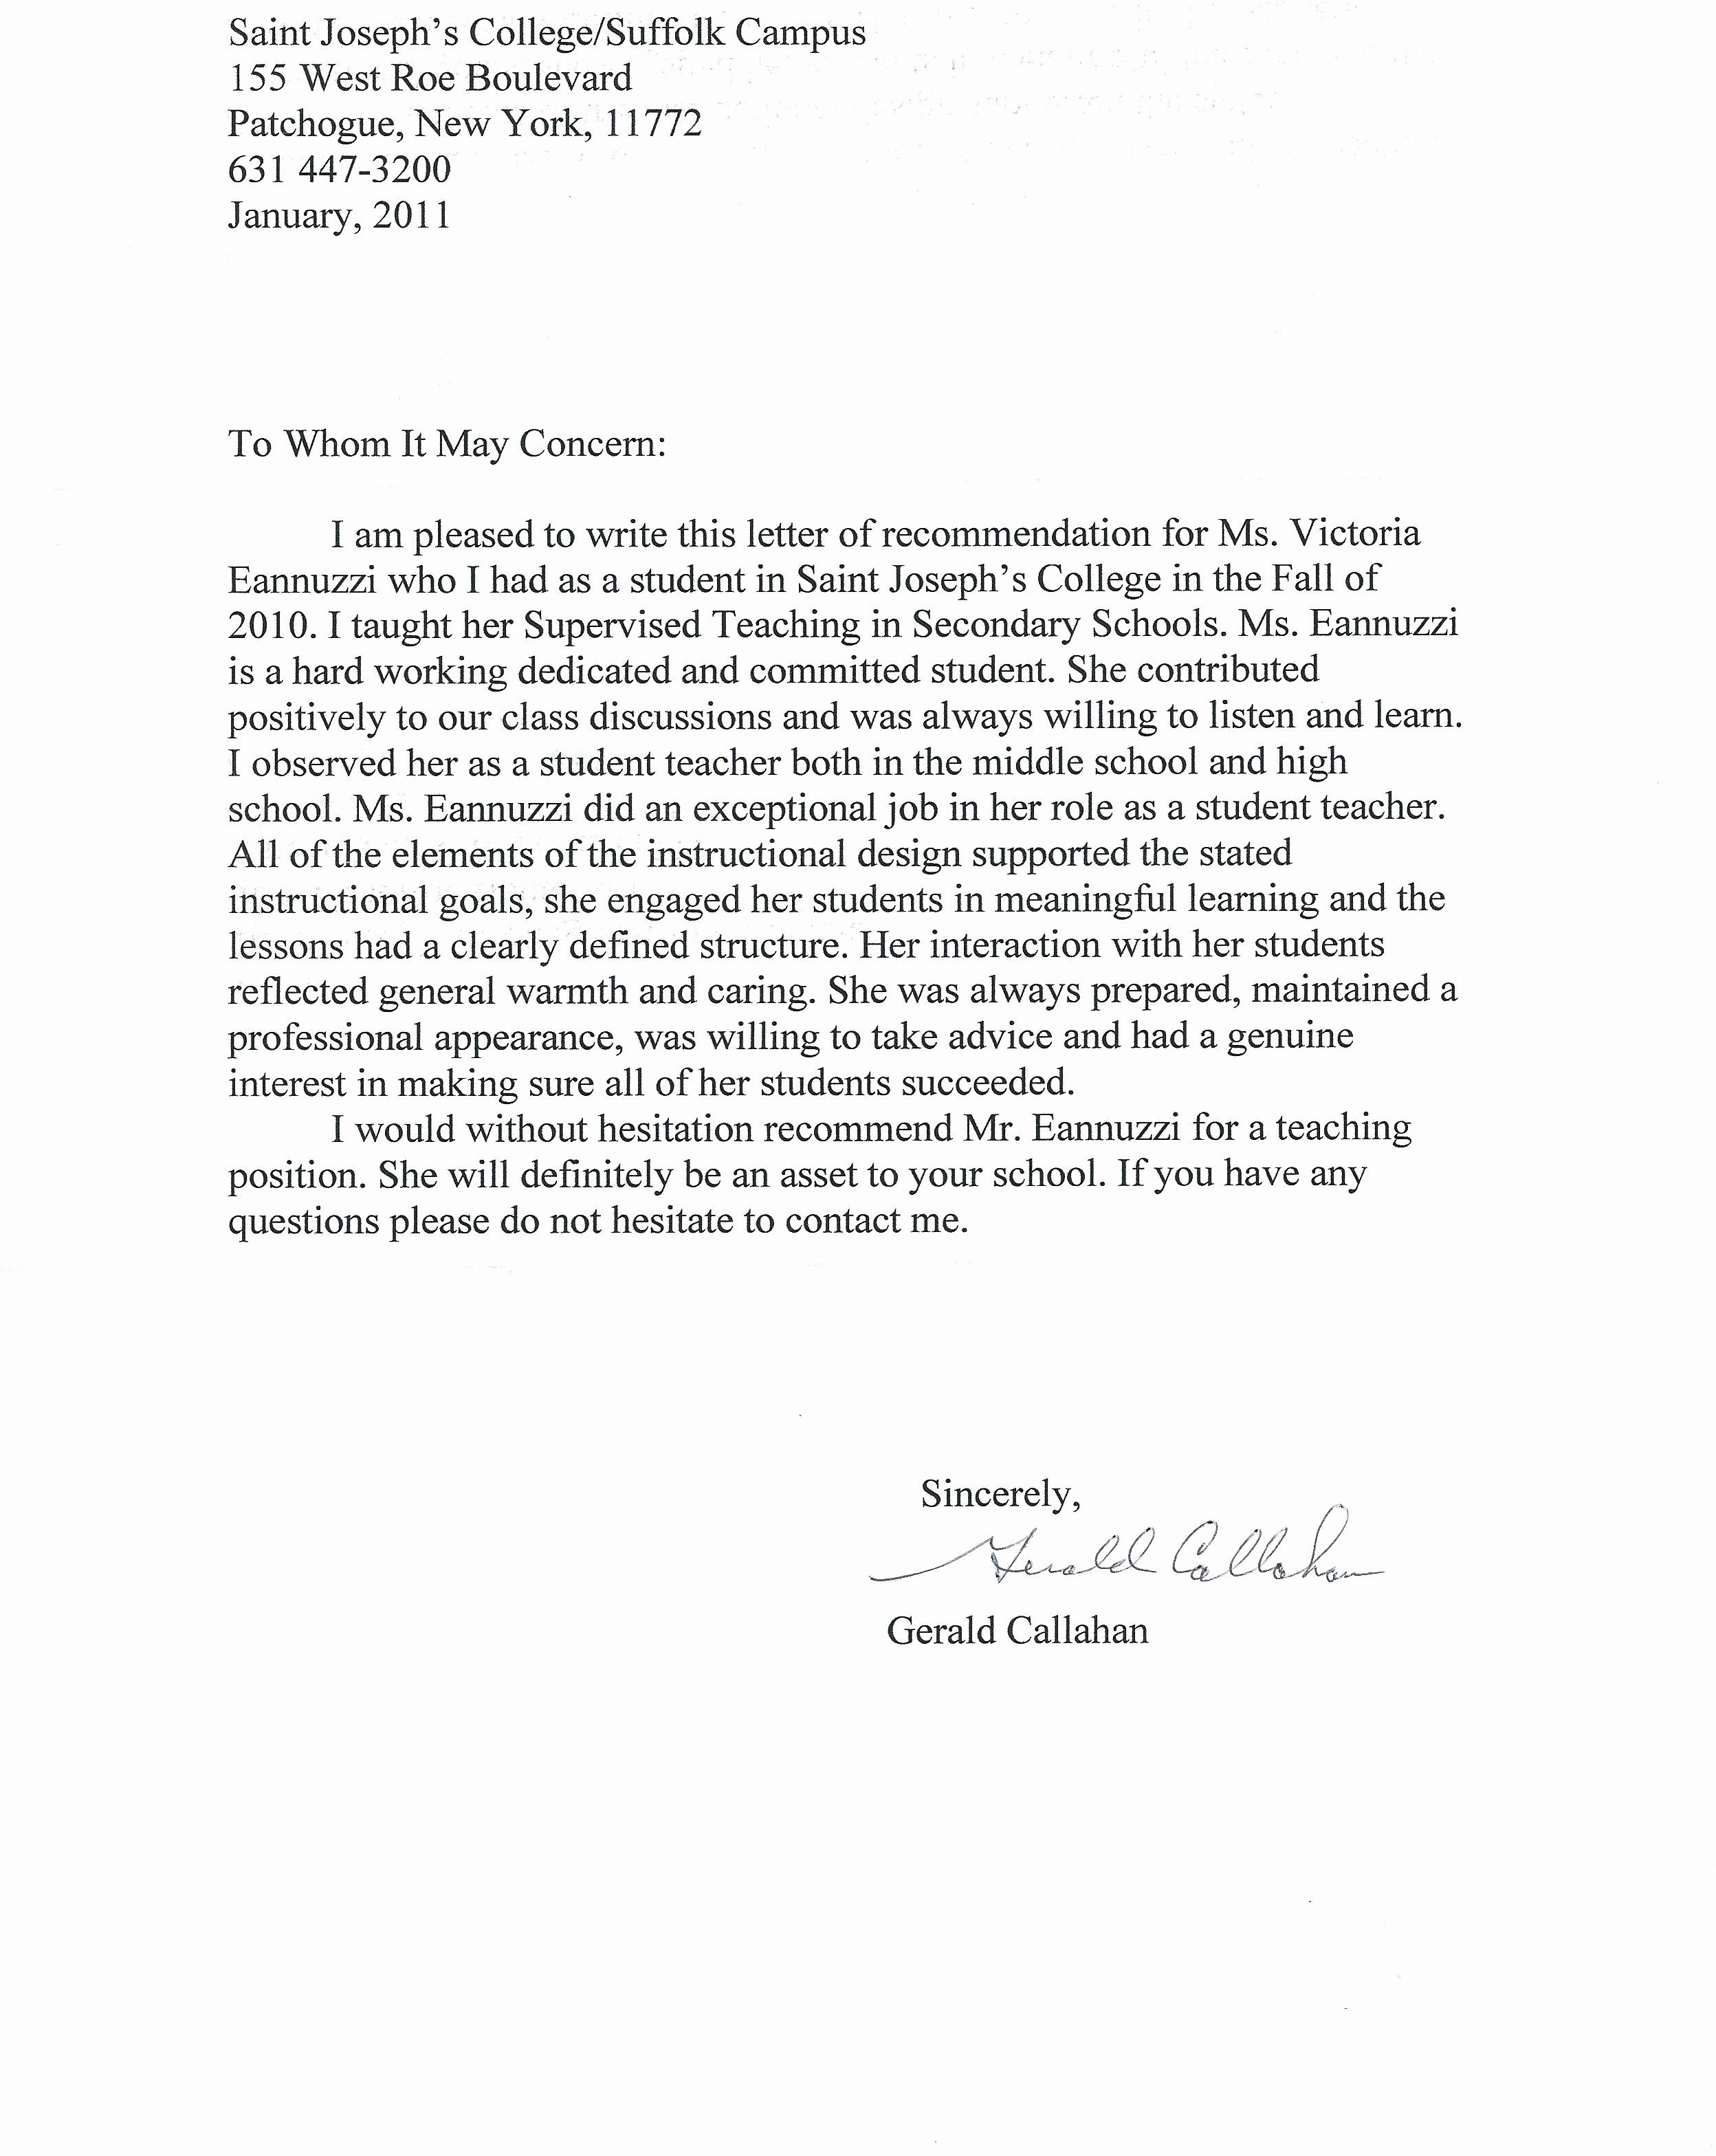 Writing Your Own Recommendation Letter Best Of Victoria Anne Eannuzzi My Teaching Portfolio